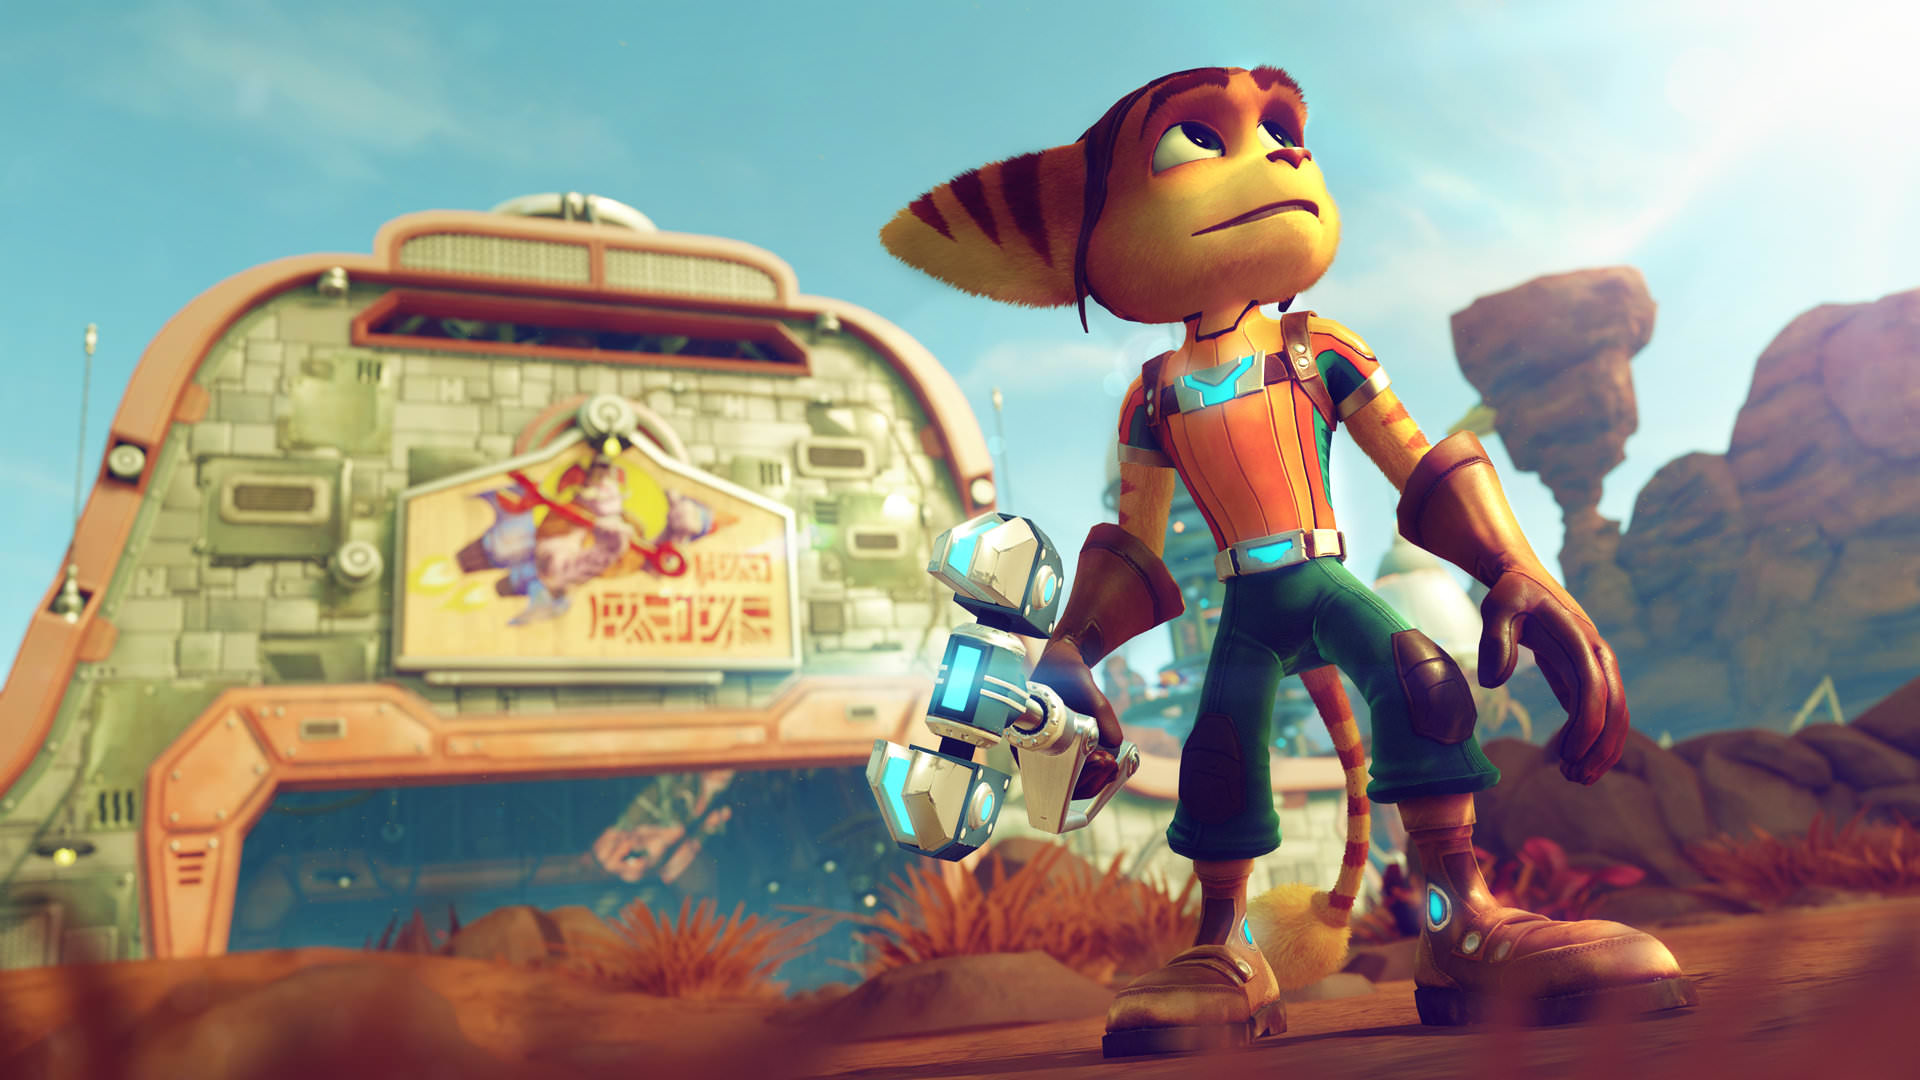 PS4 exclusive Ratchet and Clank takes top spot